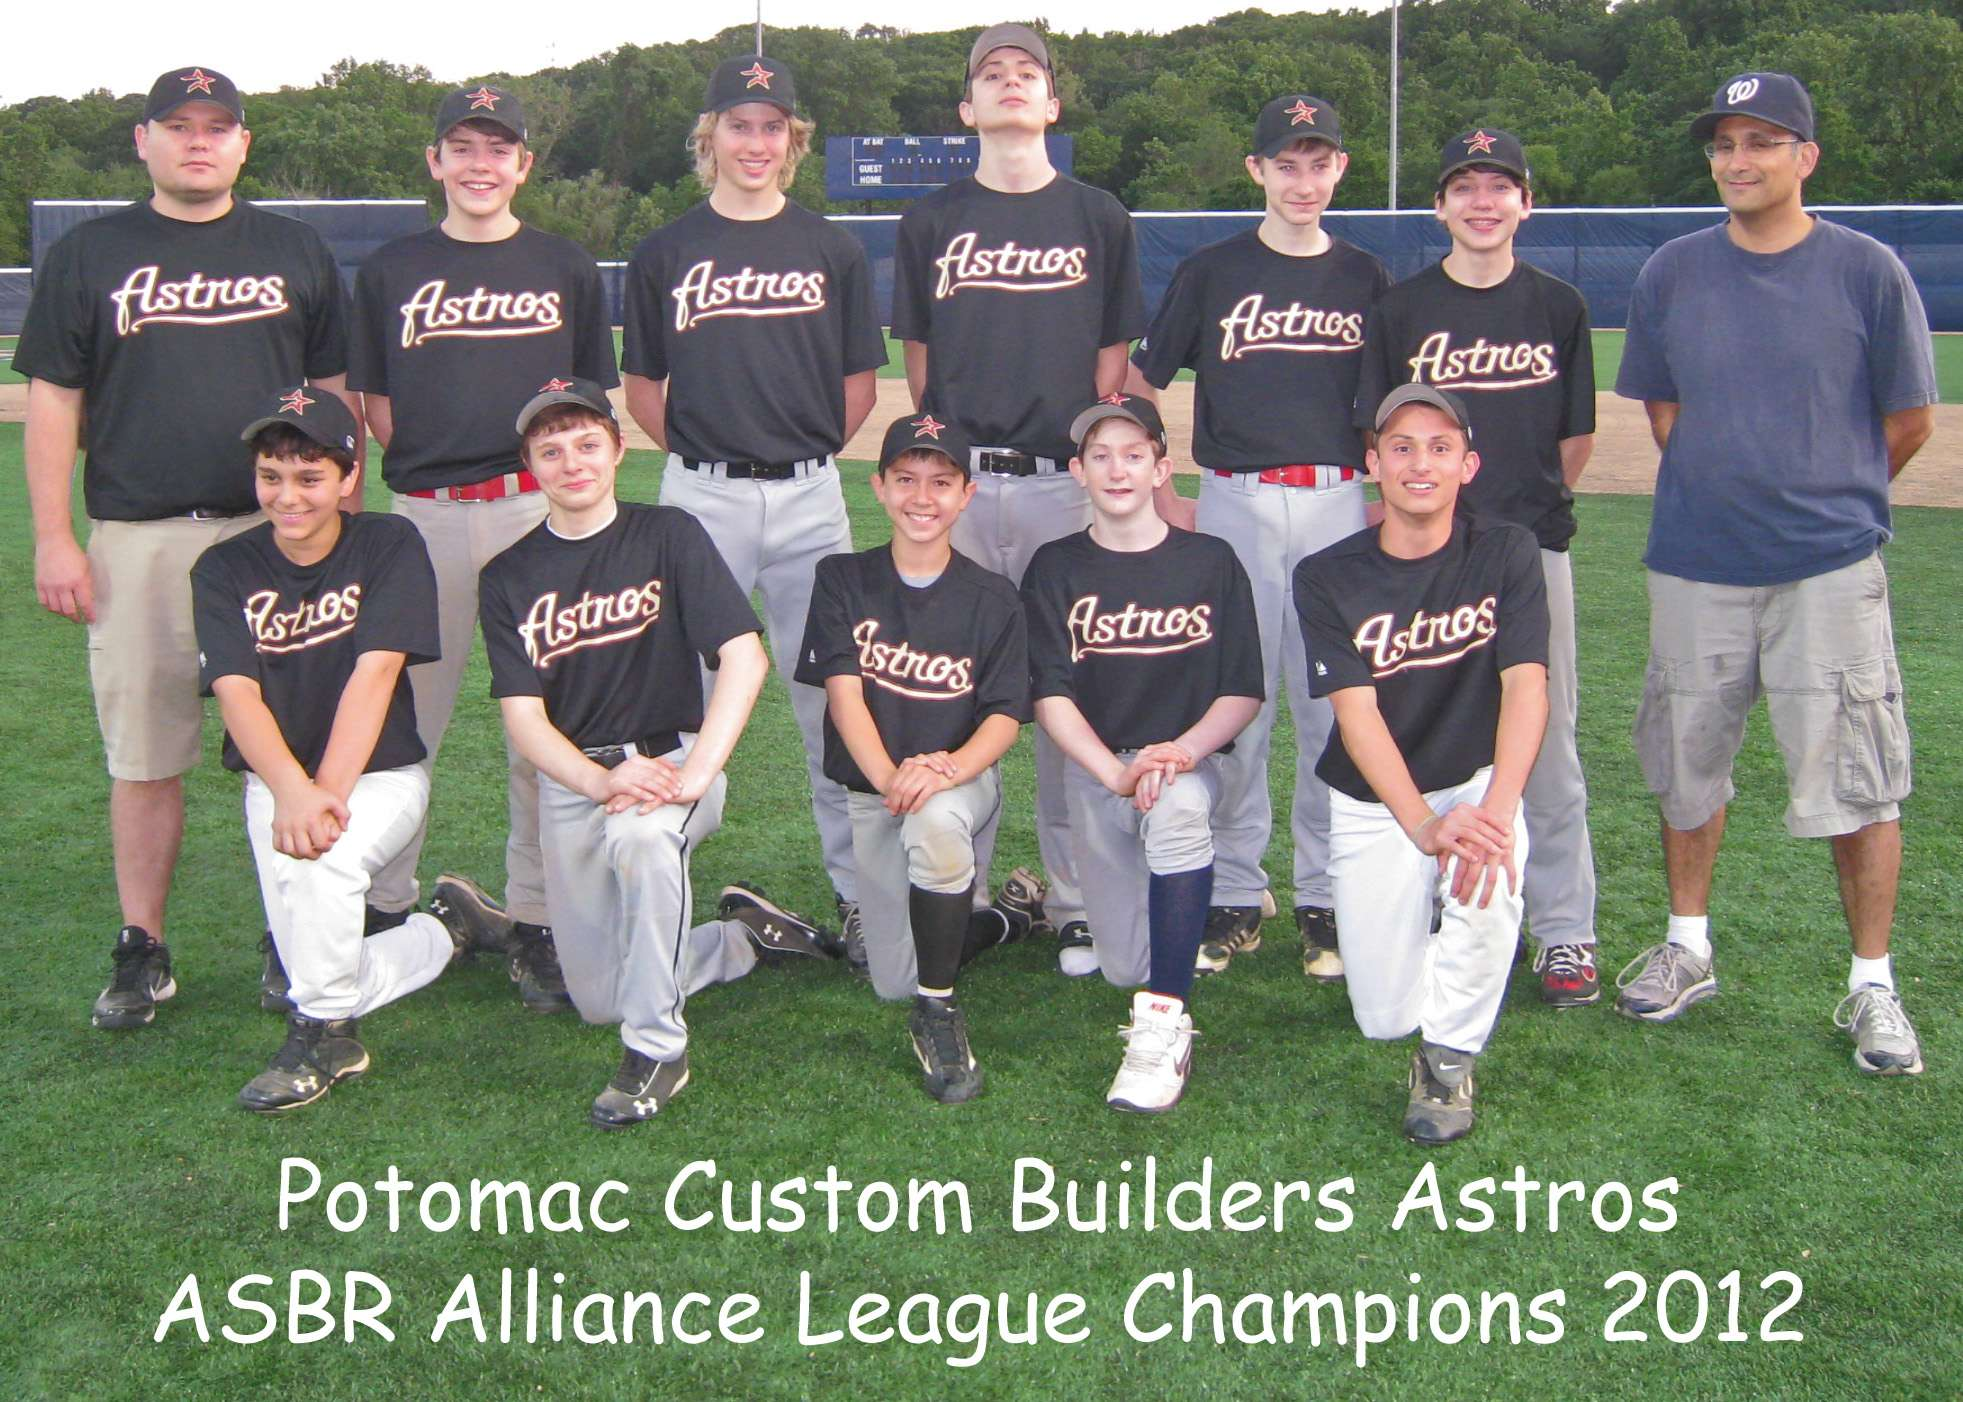 2012 Alliance Champs Astros